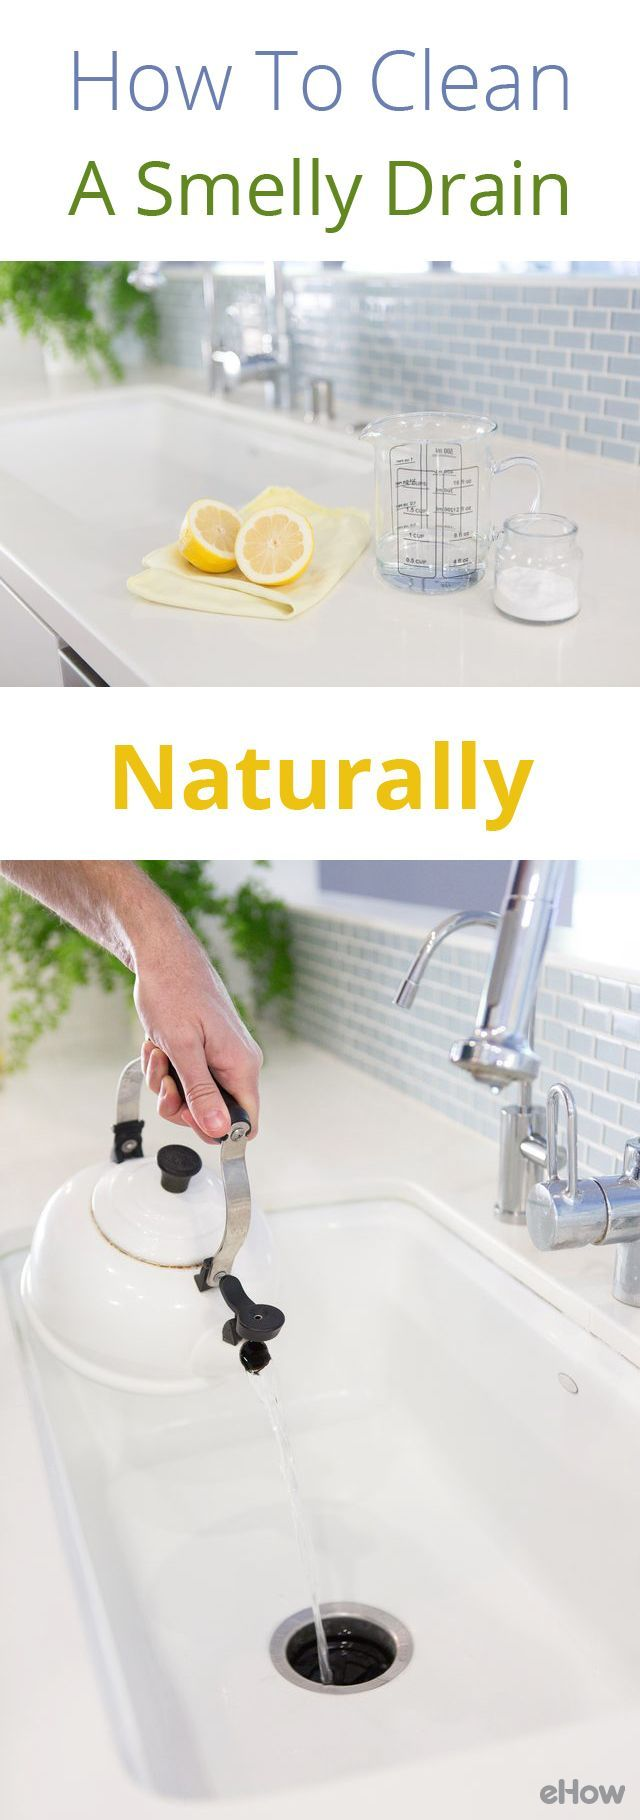 How to naturally clean a smelly drain smelly drain and - How to clean bathroom sink drain ...